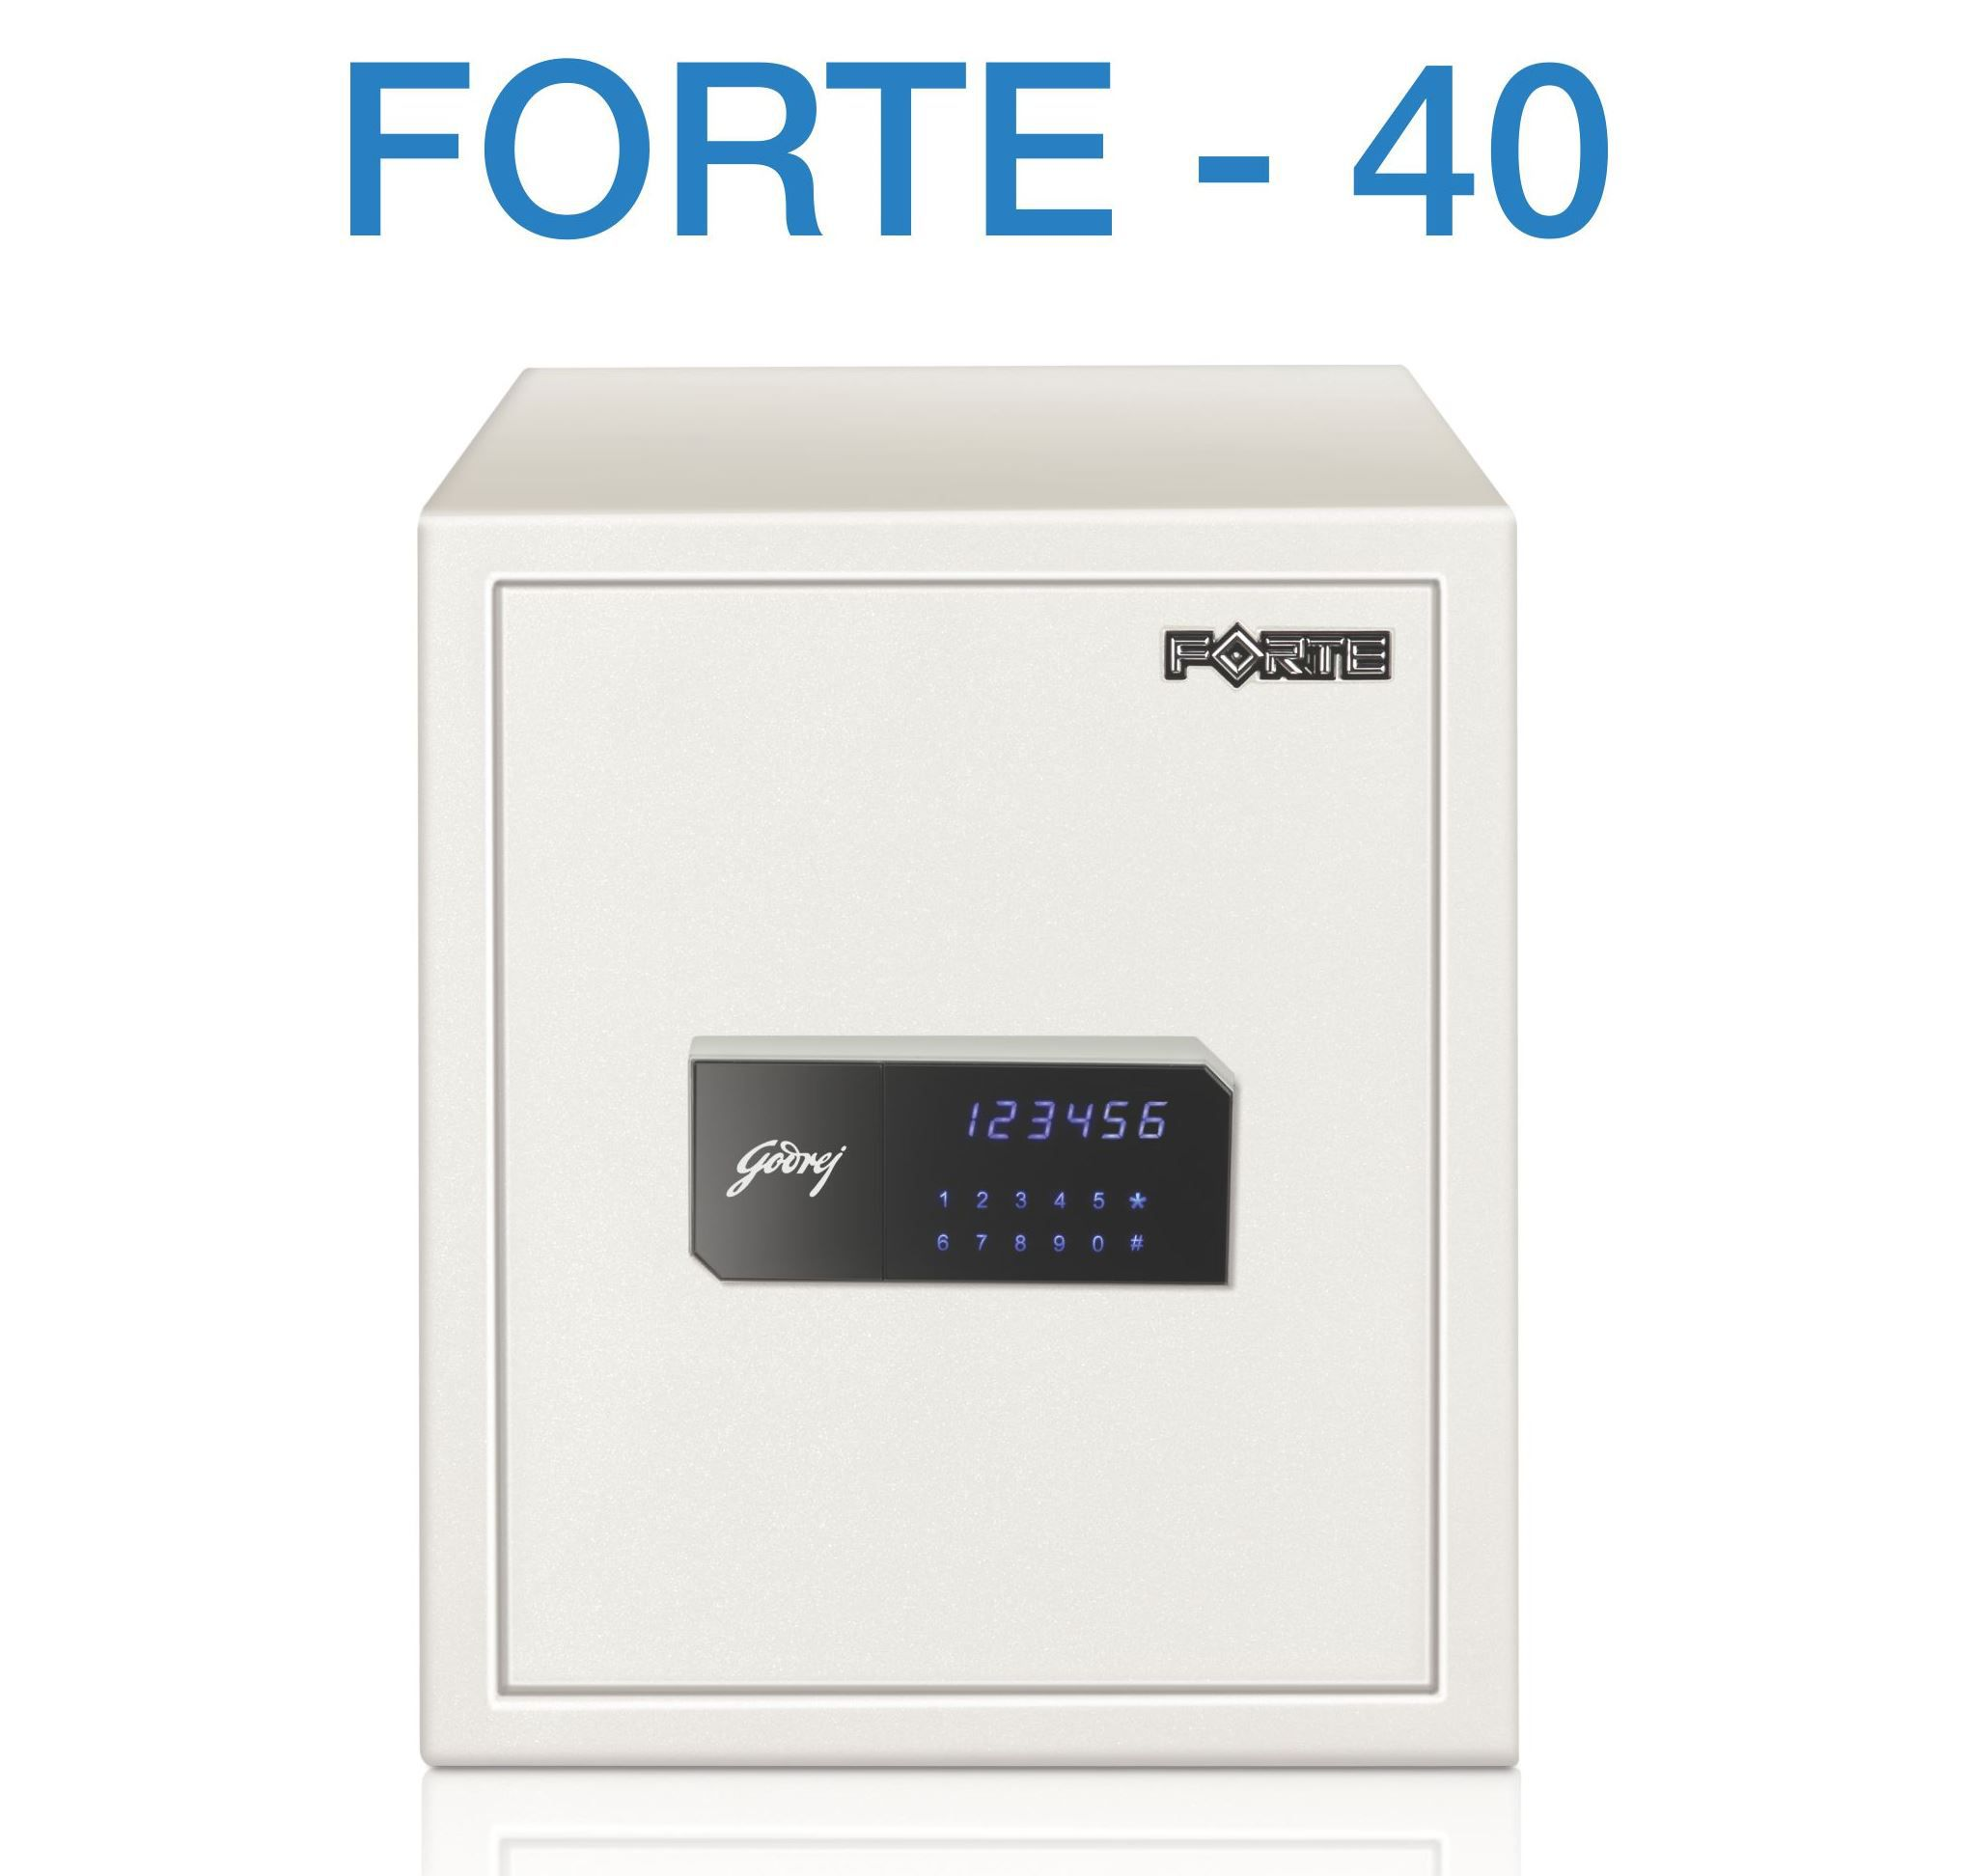 Godrej Forte 40 Steel Safe (White) FREE DEMO